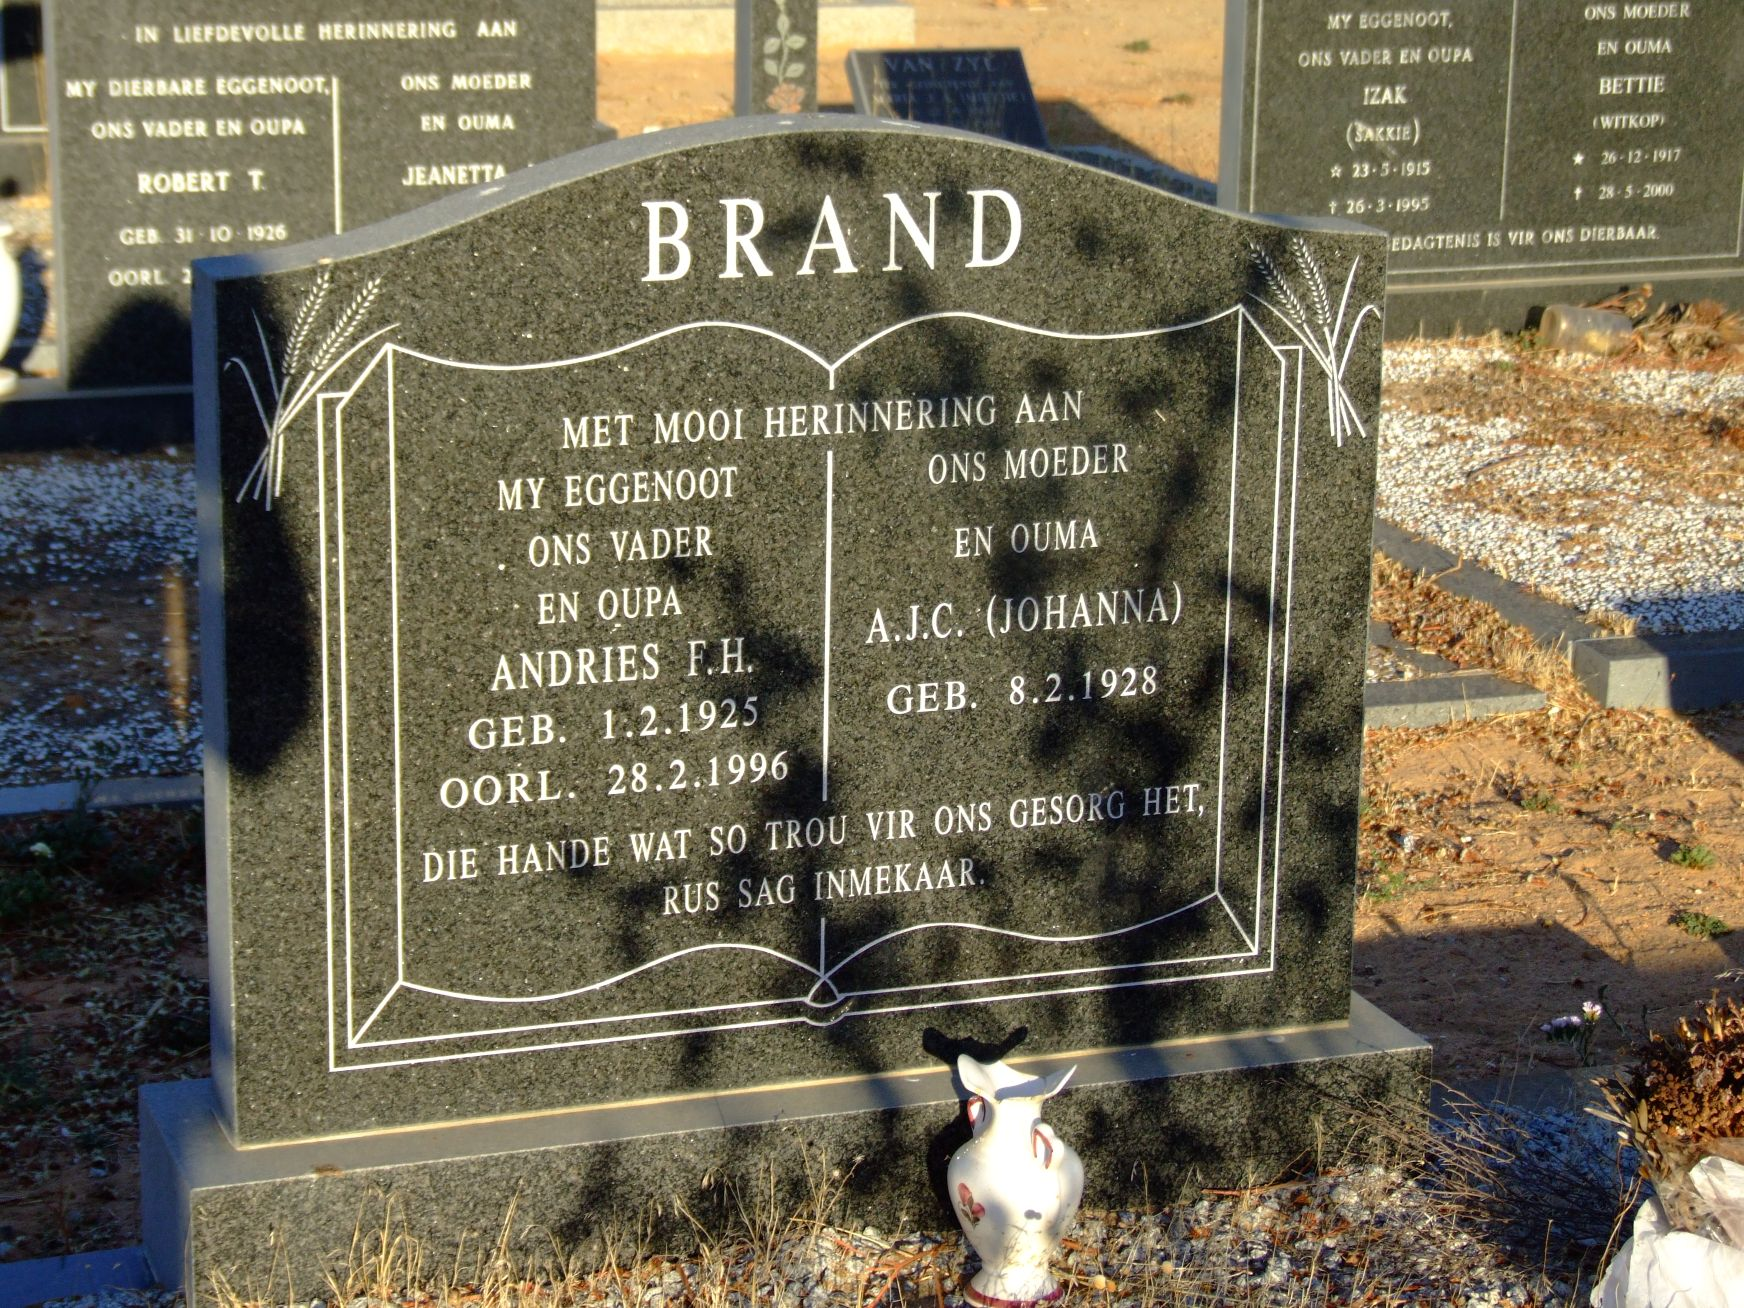 Brand, Andries F. H. + Brand, A. J. C.